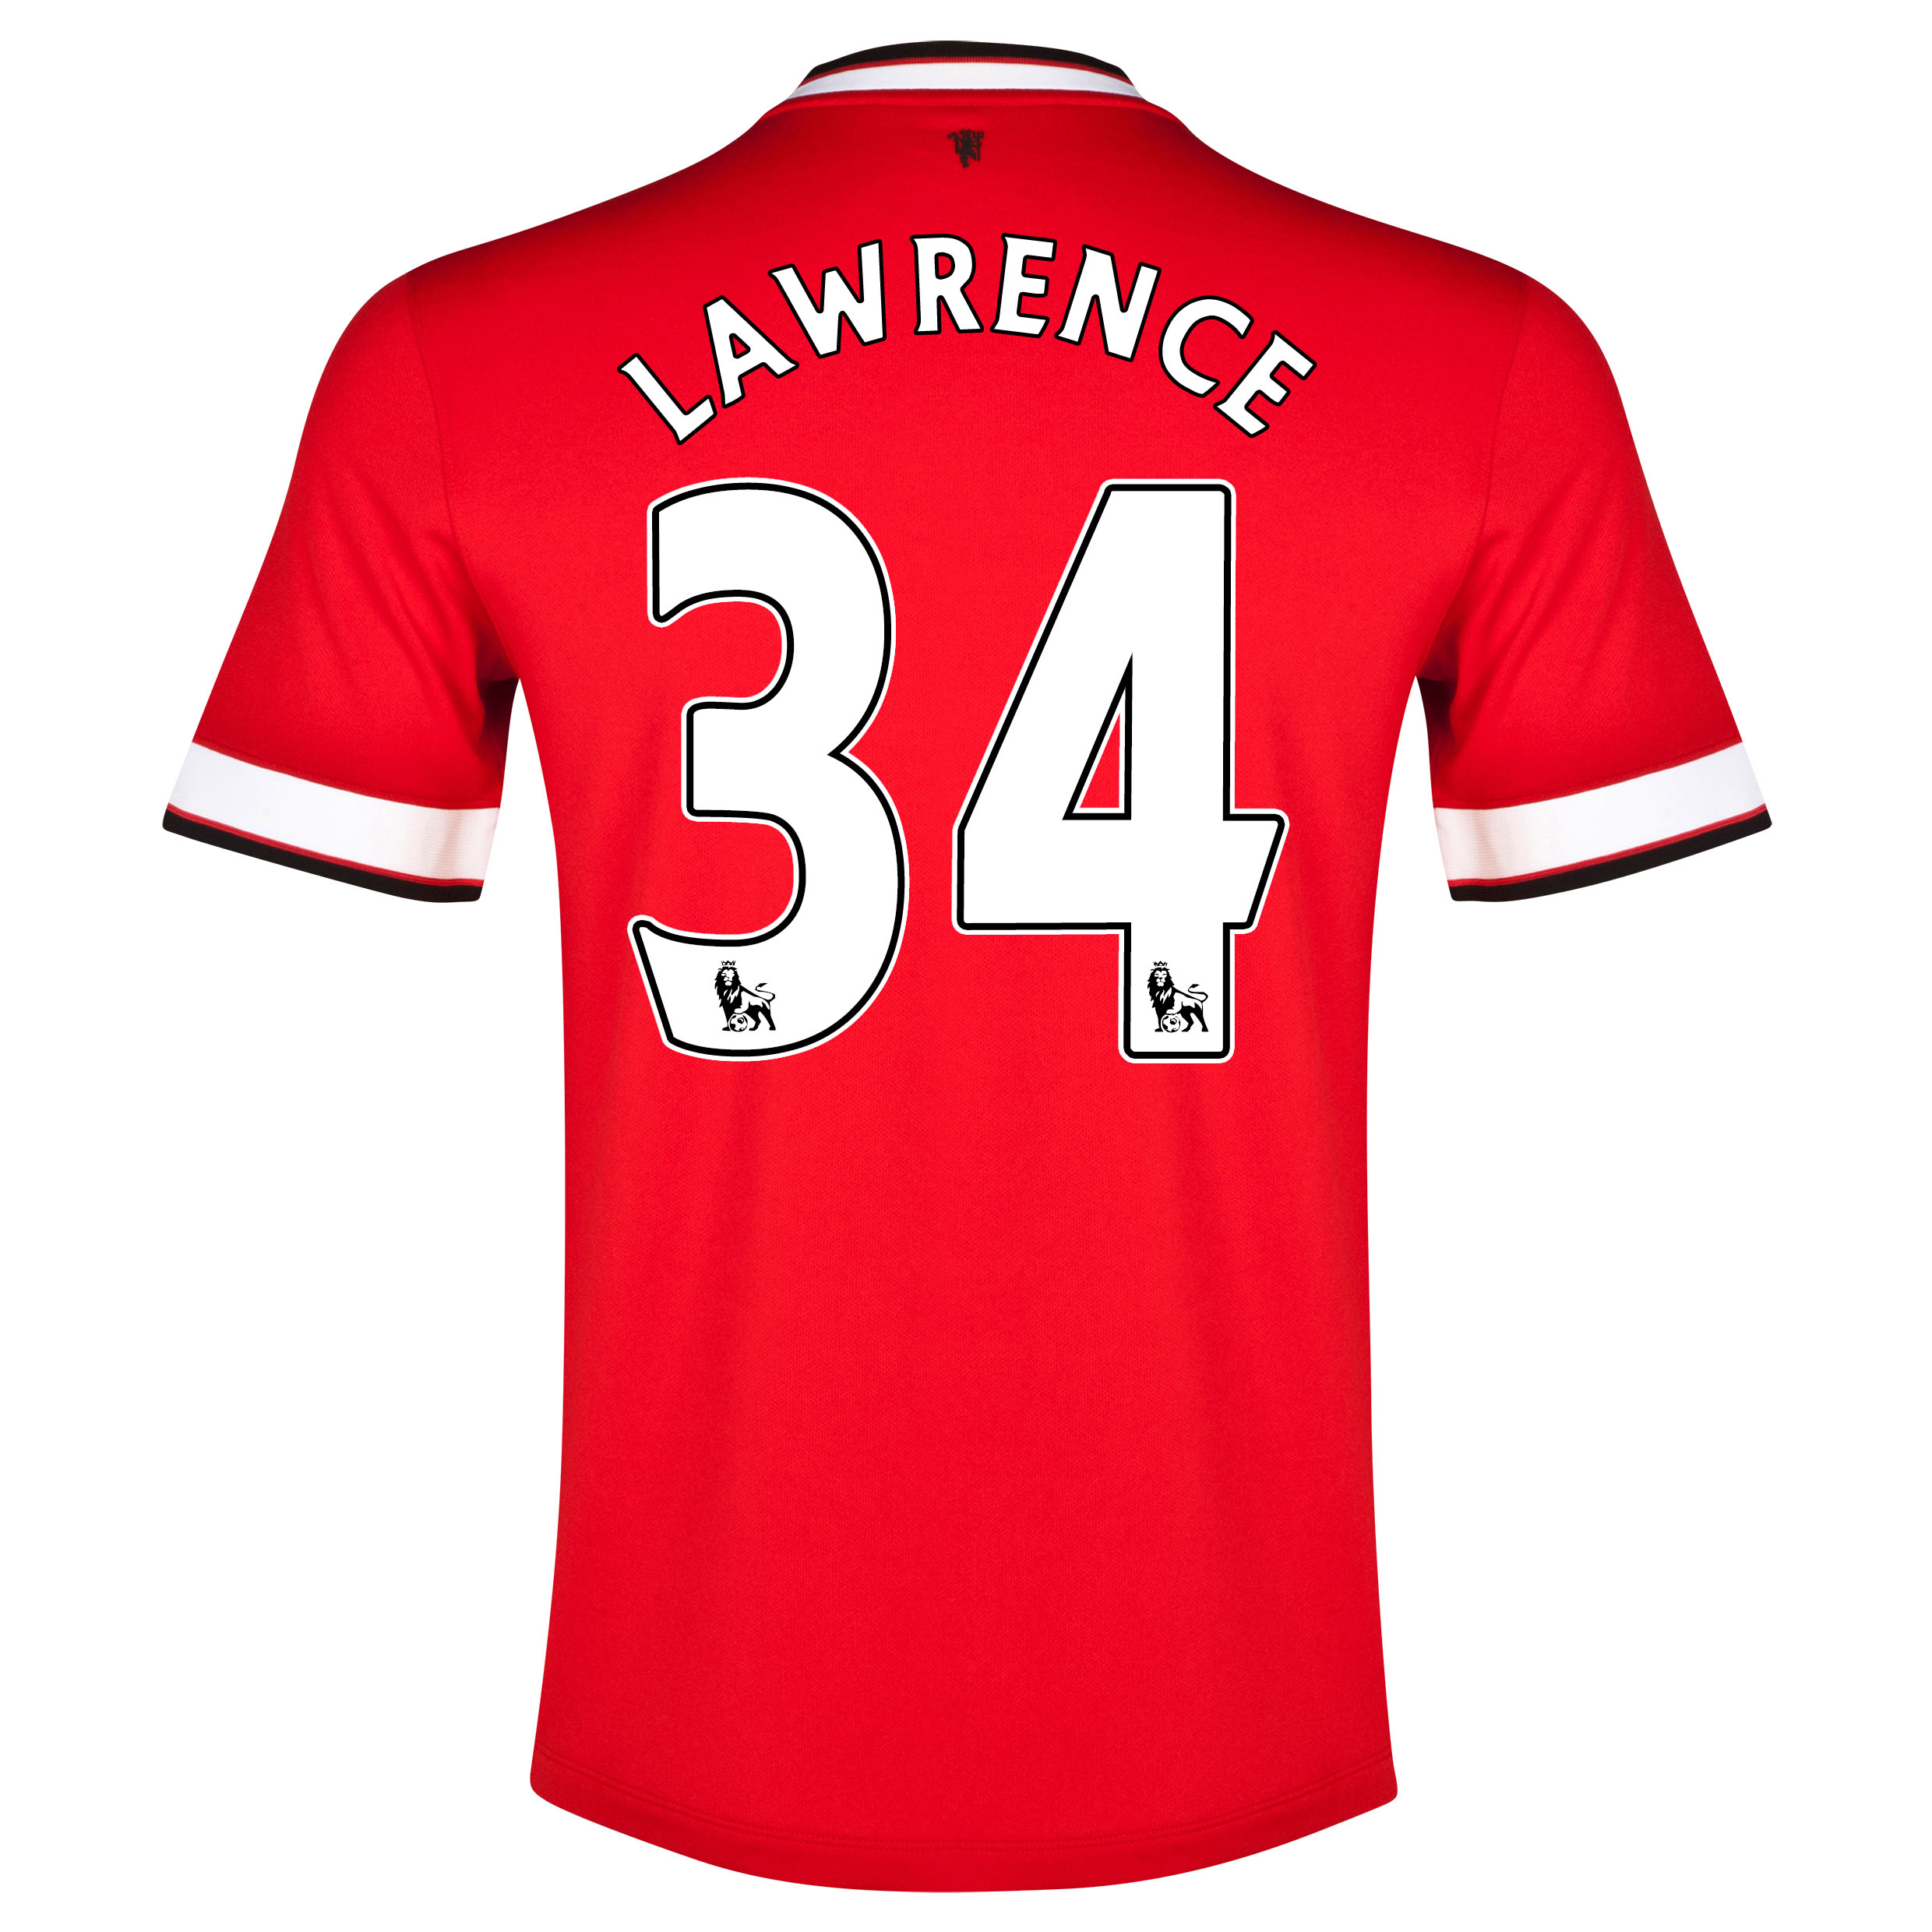 Manchester United Home Shirt 2014/15 with Lawrence 34 printing